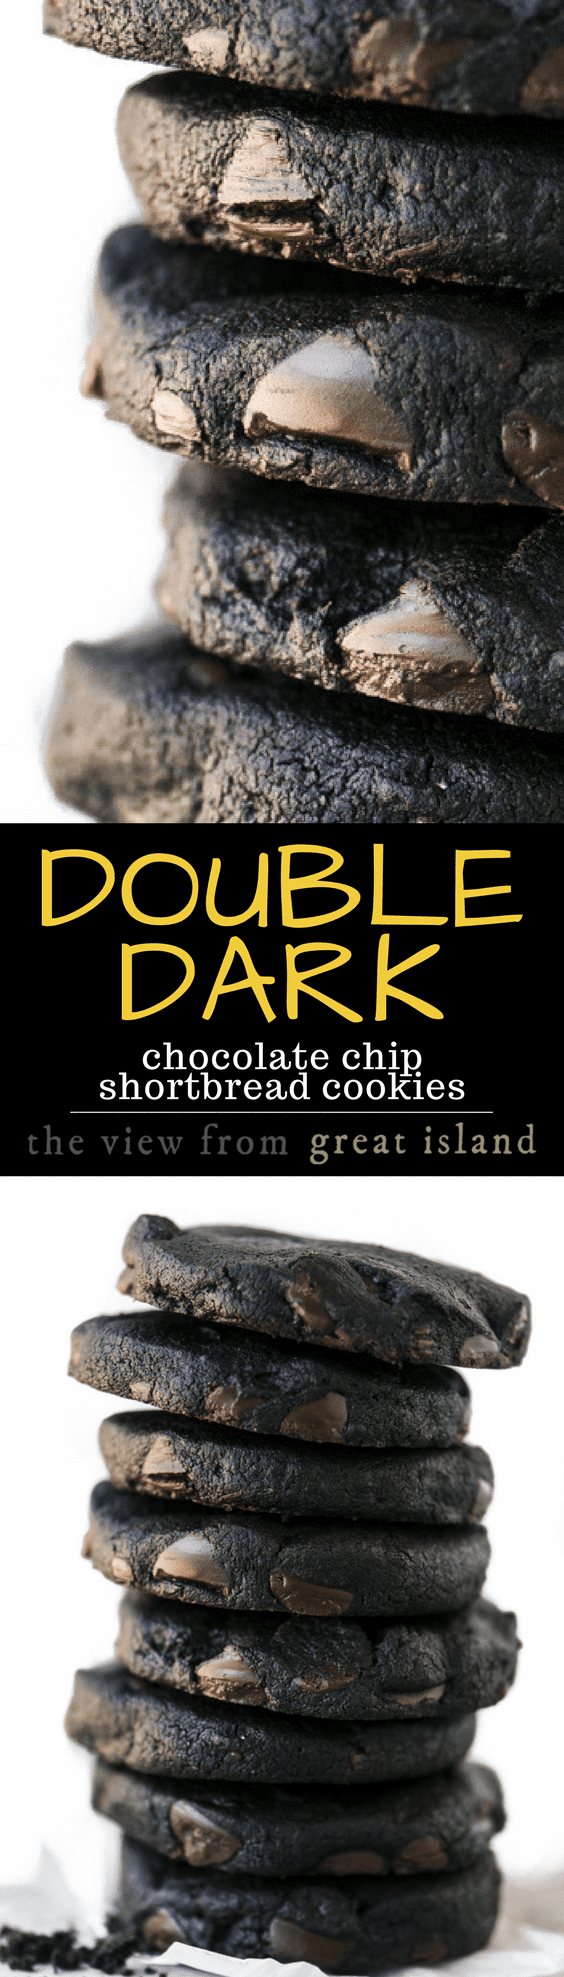 Double Dark Chocolate Chip Shortbread Cookies ~ they melt in your mouth with an explosion of deep rich chocolate that'll make your eyelids flutter... to call it a cookie is to completely miss the point. #COOKIES #CHOCOLATE #CHOCOLATECHIPCOOKIES #SHORTBREAD #BESTCHOCOLATECOOKIES #DARKCHOCOLATE #DARKCHOCOLATECOOKIES #HERSHEYSSPECIALDARK #DARKCHOCOLATECHIPCOOKIES #HOLIDAYS #CHRISTMASCOOKIES #SLICEANDBAKE